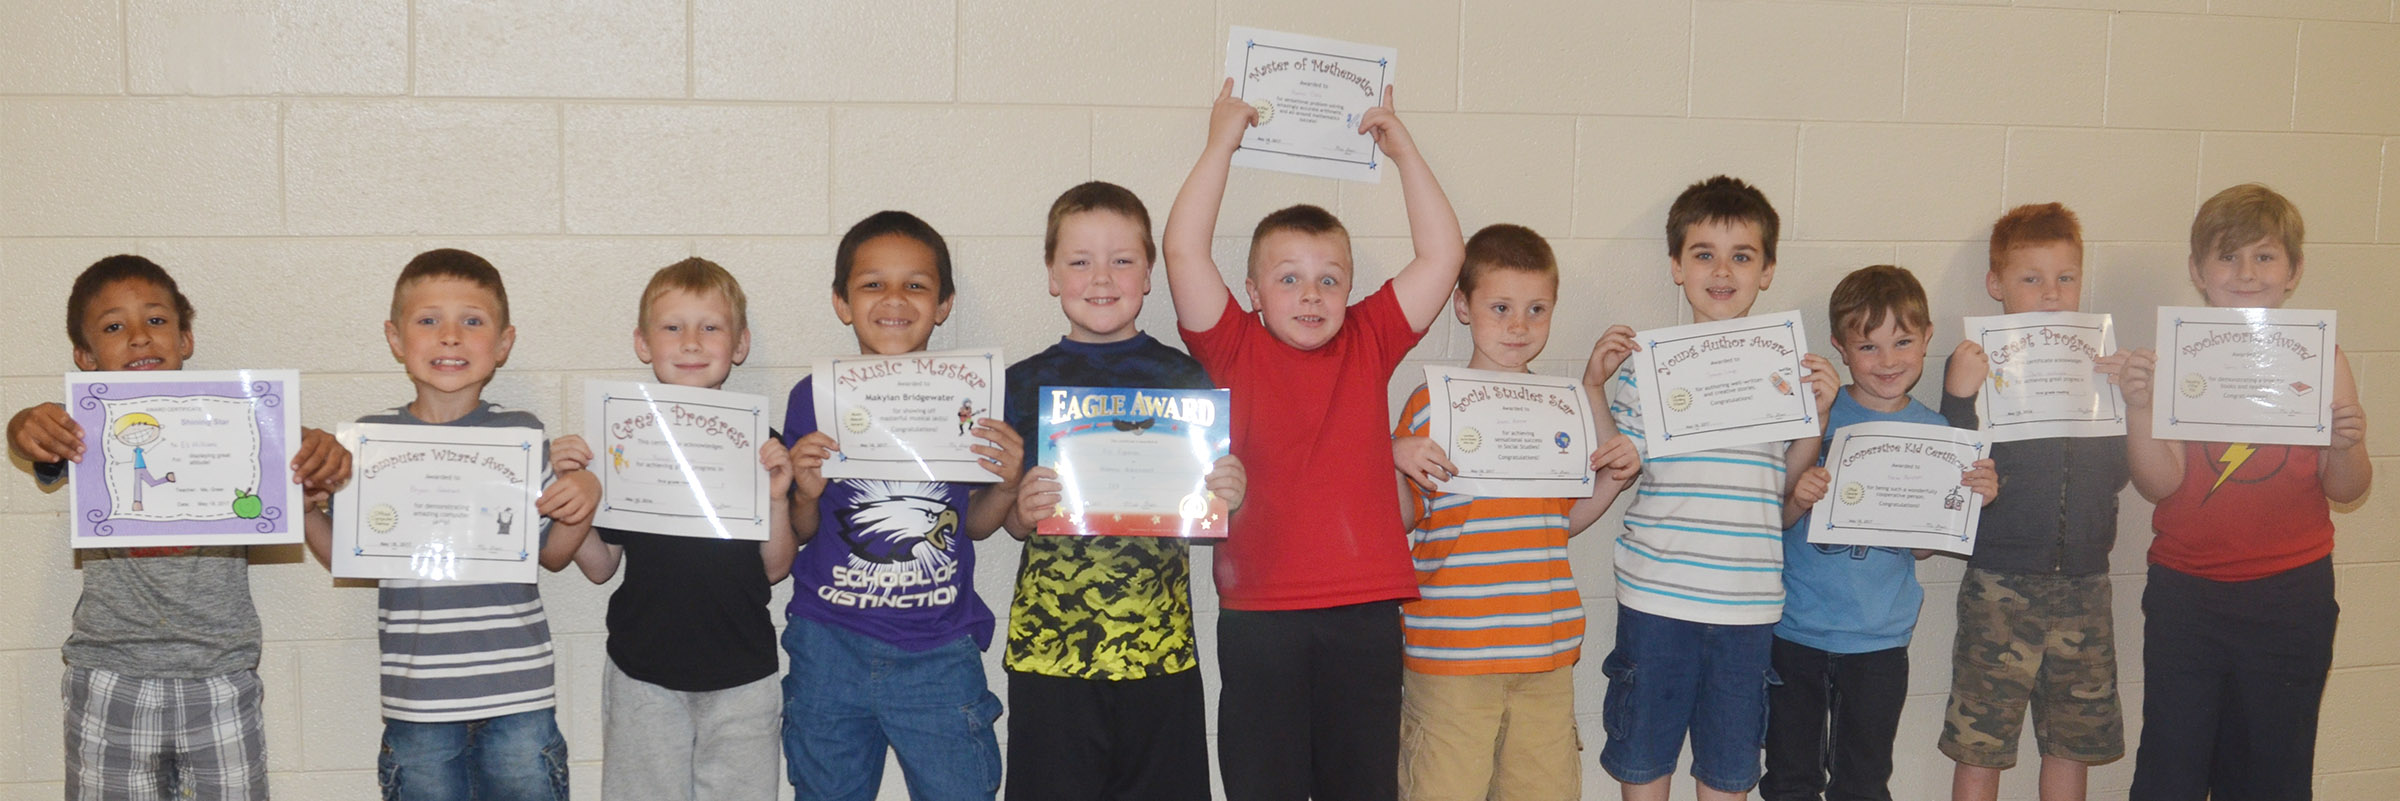 CES first-graders in Amanda Greer's class recently received awards for their academic work and classroom behavior this school year. From left are Eli Williams, Bryson Gabehart, Raleigh Spencer, Makyian Bridgewater, Eric Epperson, Hunter Clark, James Brunner, Sawyer Lange, Karson Burchett, Carter Wethington and Tommy Caswell. Absent from the photo are Braxton Giles-Osinger, Caleb Ortiz and Fabrizio Segura.